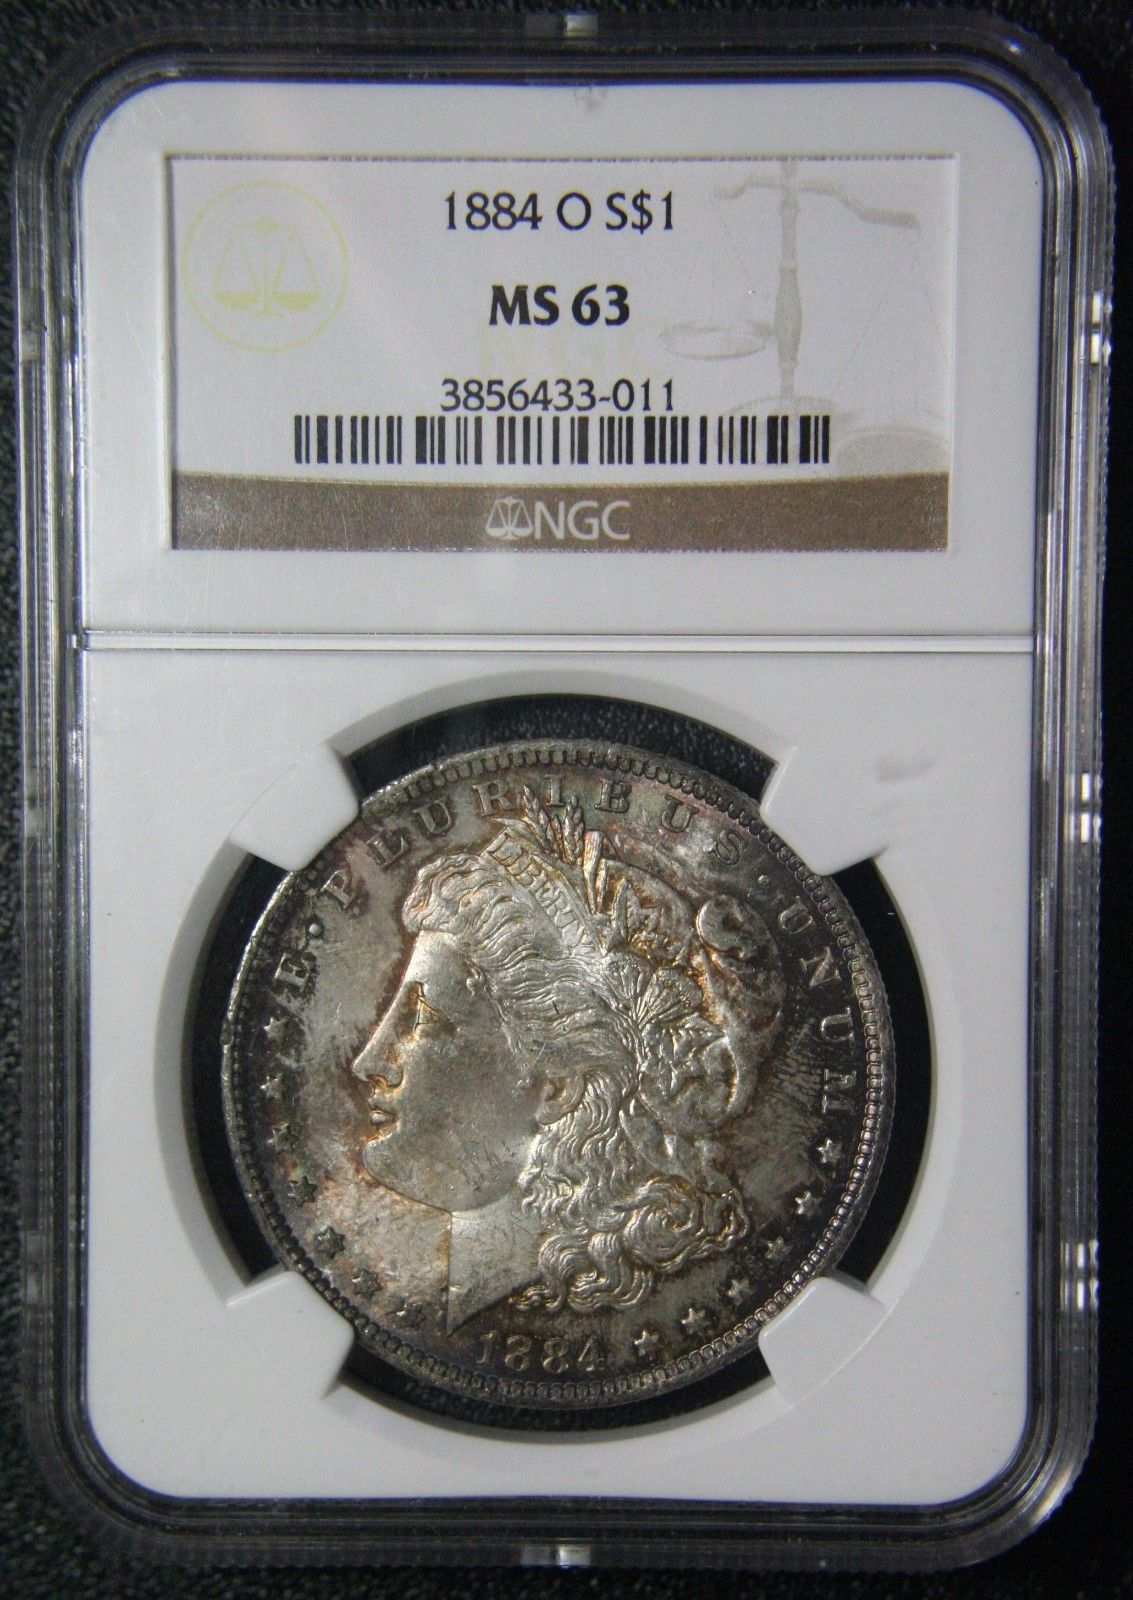 1884O Morgan Silver Dollar $1 NGC MS63 Coin Lot # SR 1051